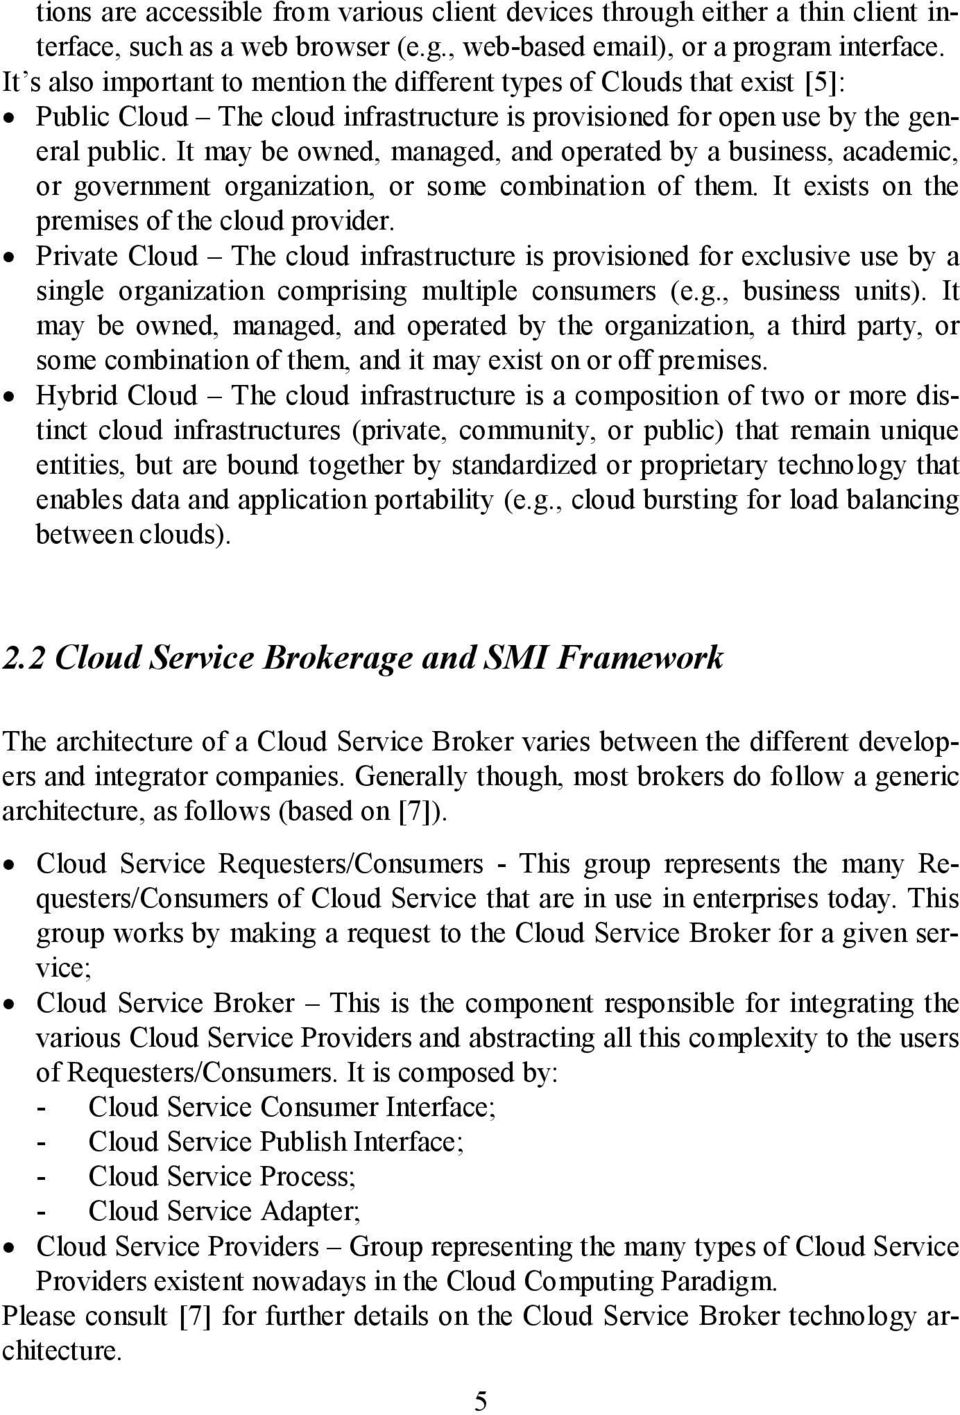 It may be owned, managed, and operated by a business, academic, or government organization, or some combination of them. It exists on the premises of the cloud provider.